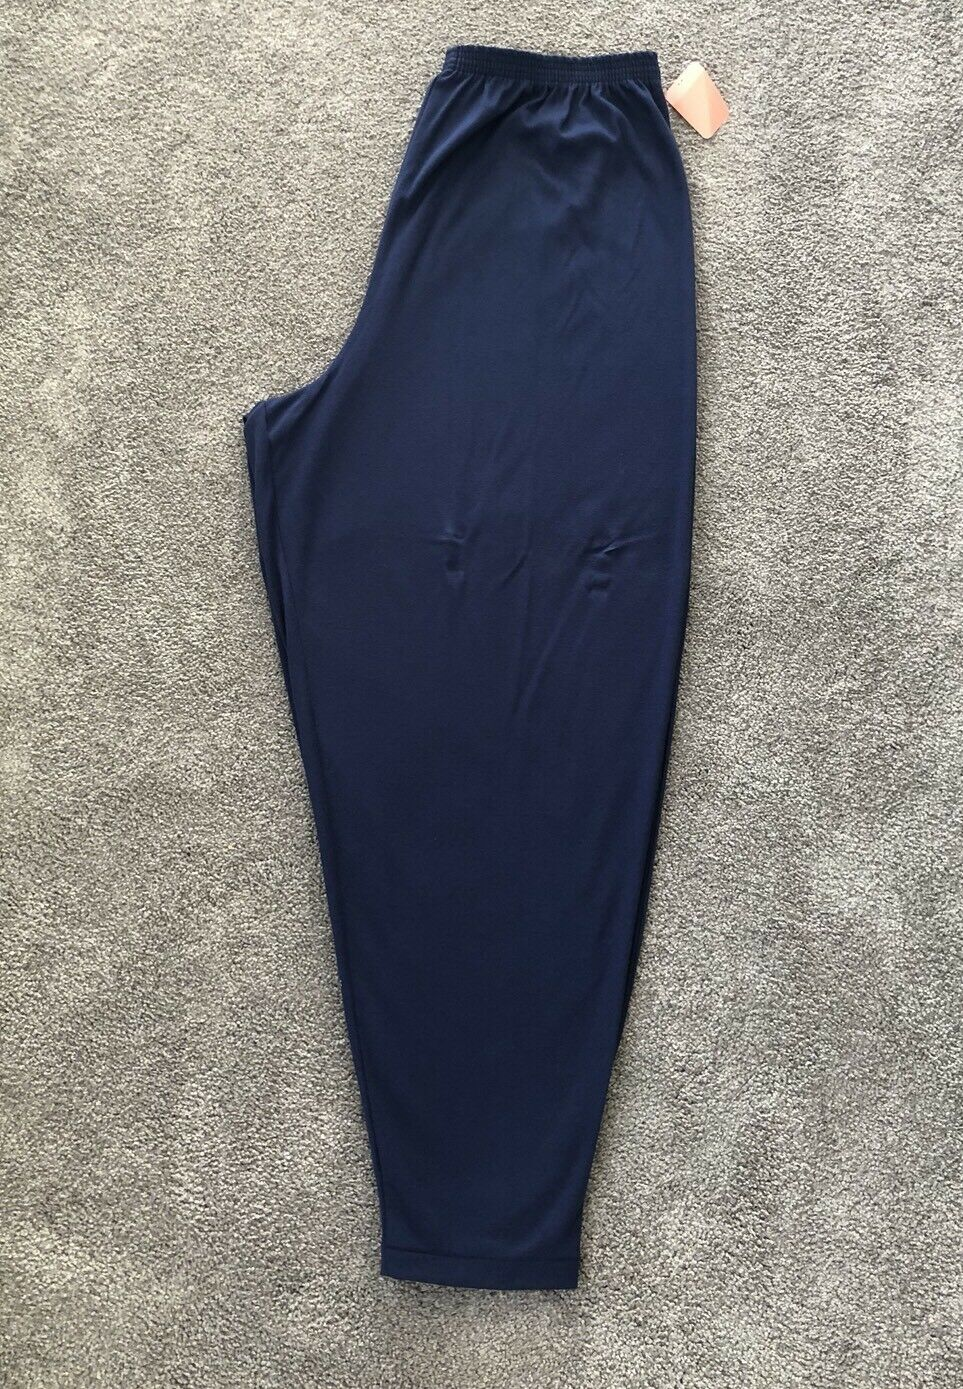 NEW PFI Fashions Navy Pants With Elastic Waist. Sz 8X. PFI 409